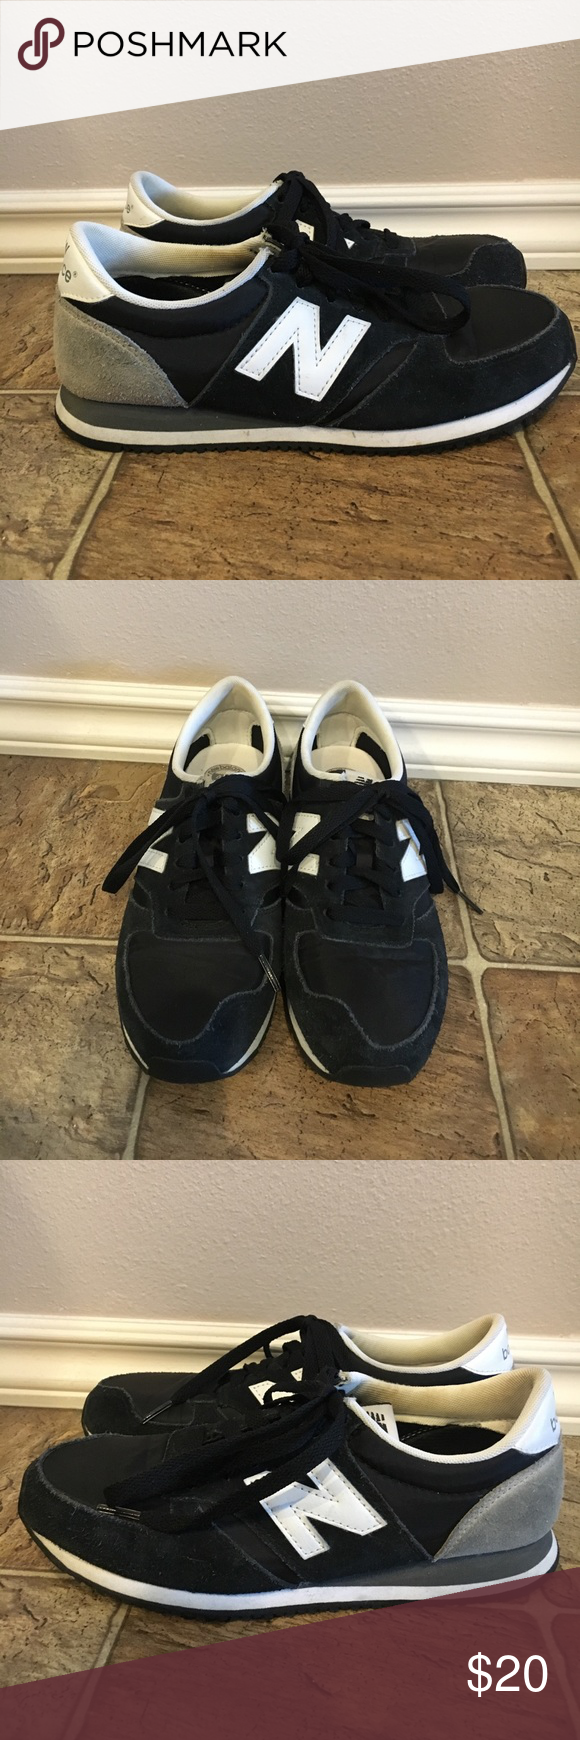 New balance 420- Black suede Used New Balance 420. Color Black. Size 7. Sides have some wear on suede from rubbing but overall decent condition. New Balance Shoes Sneakers